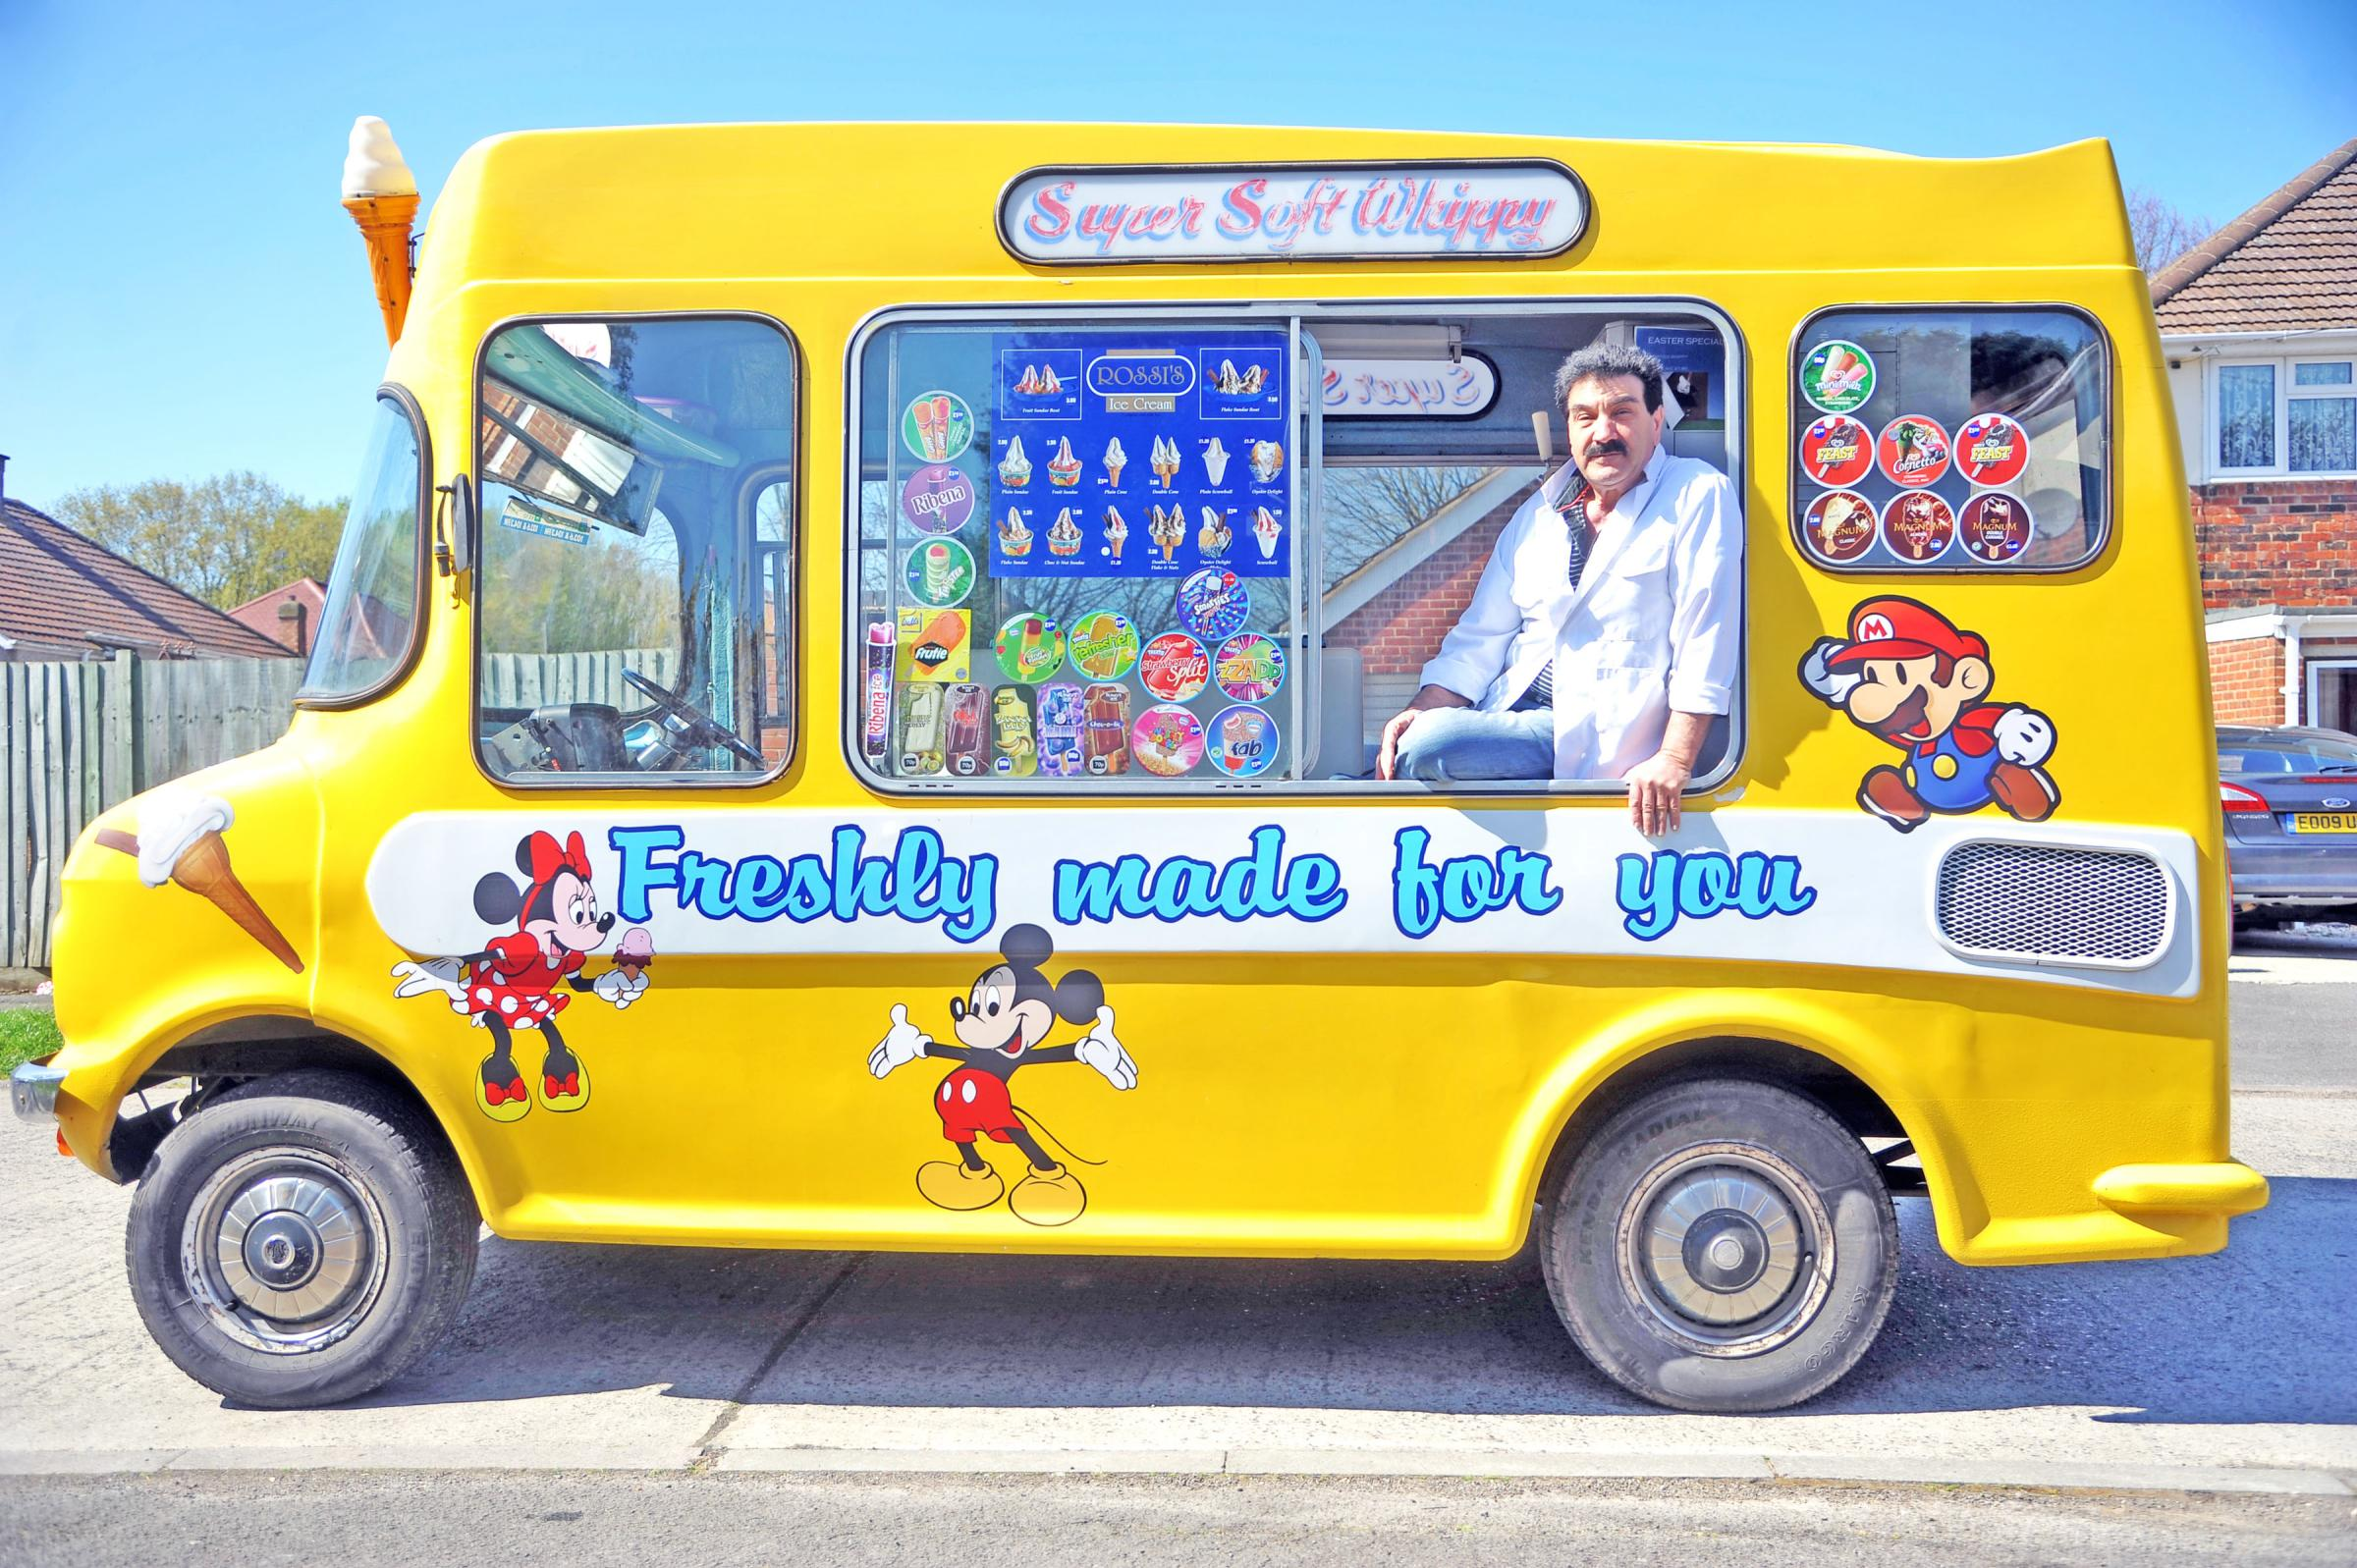 Mario Bretti, in the ice cream van he has been driving since the early 1970s